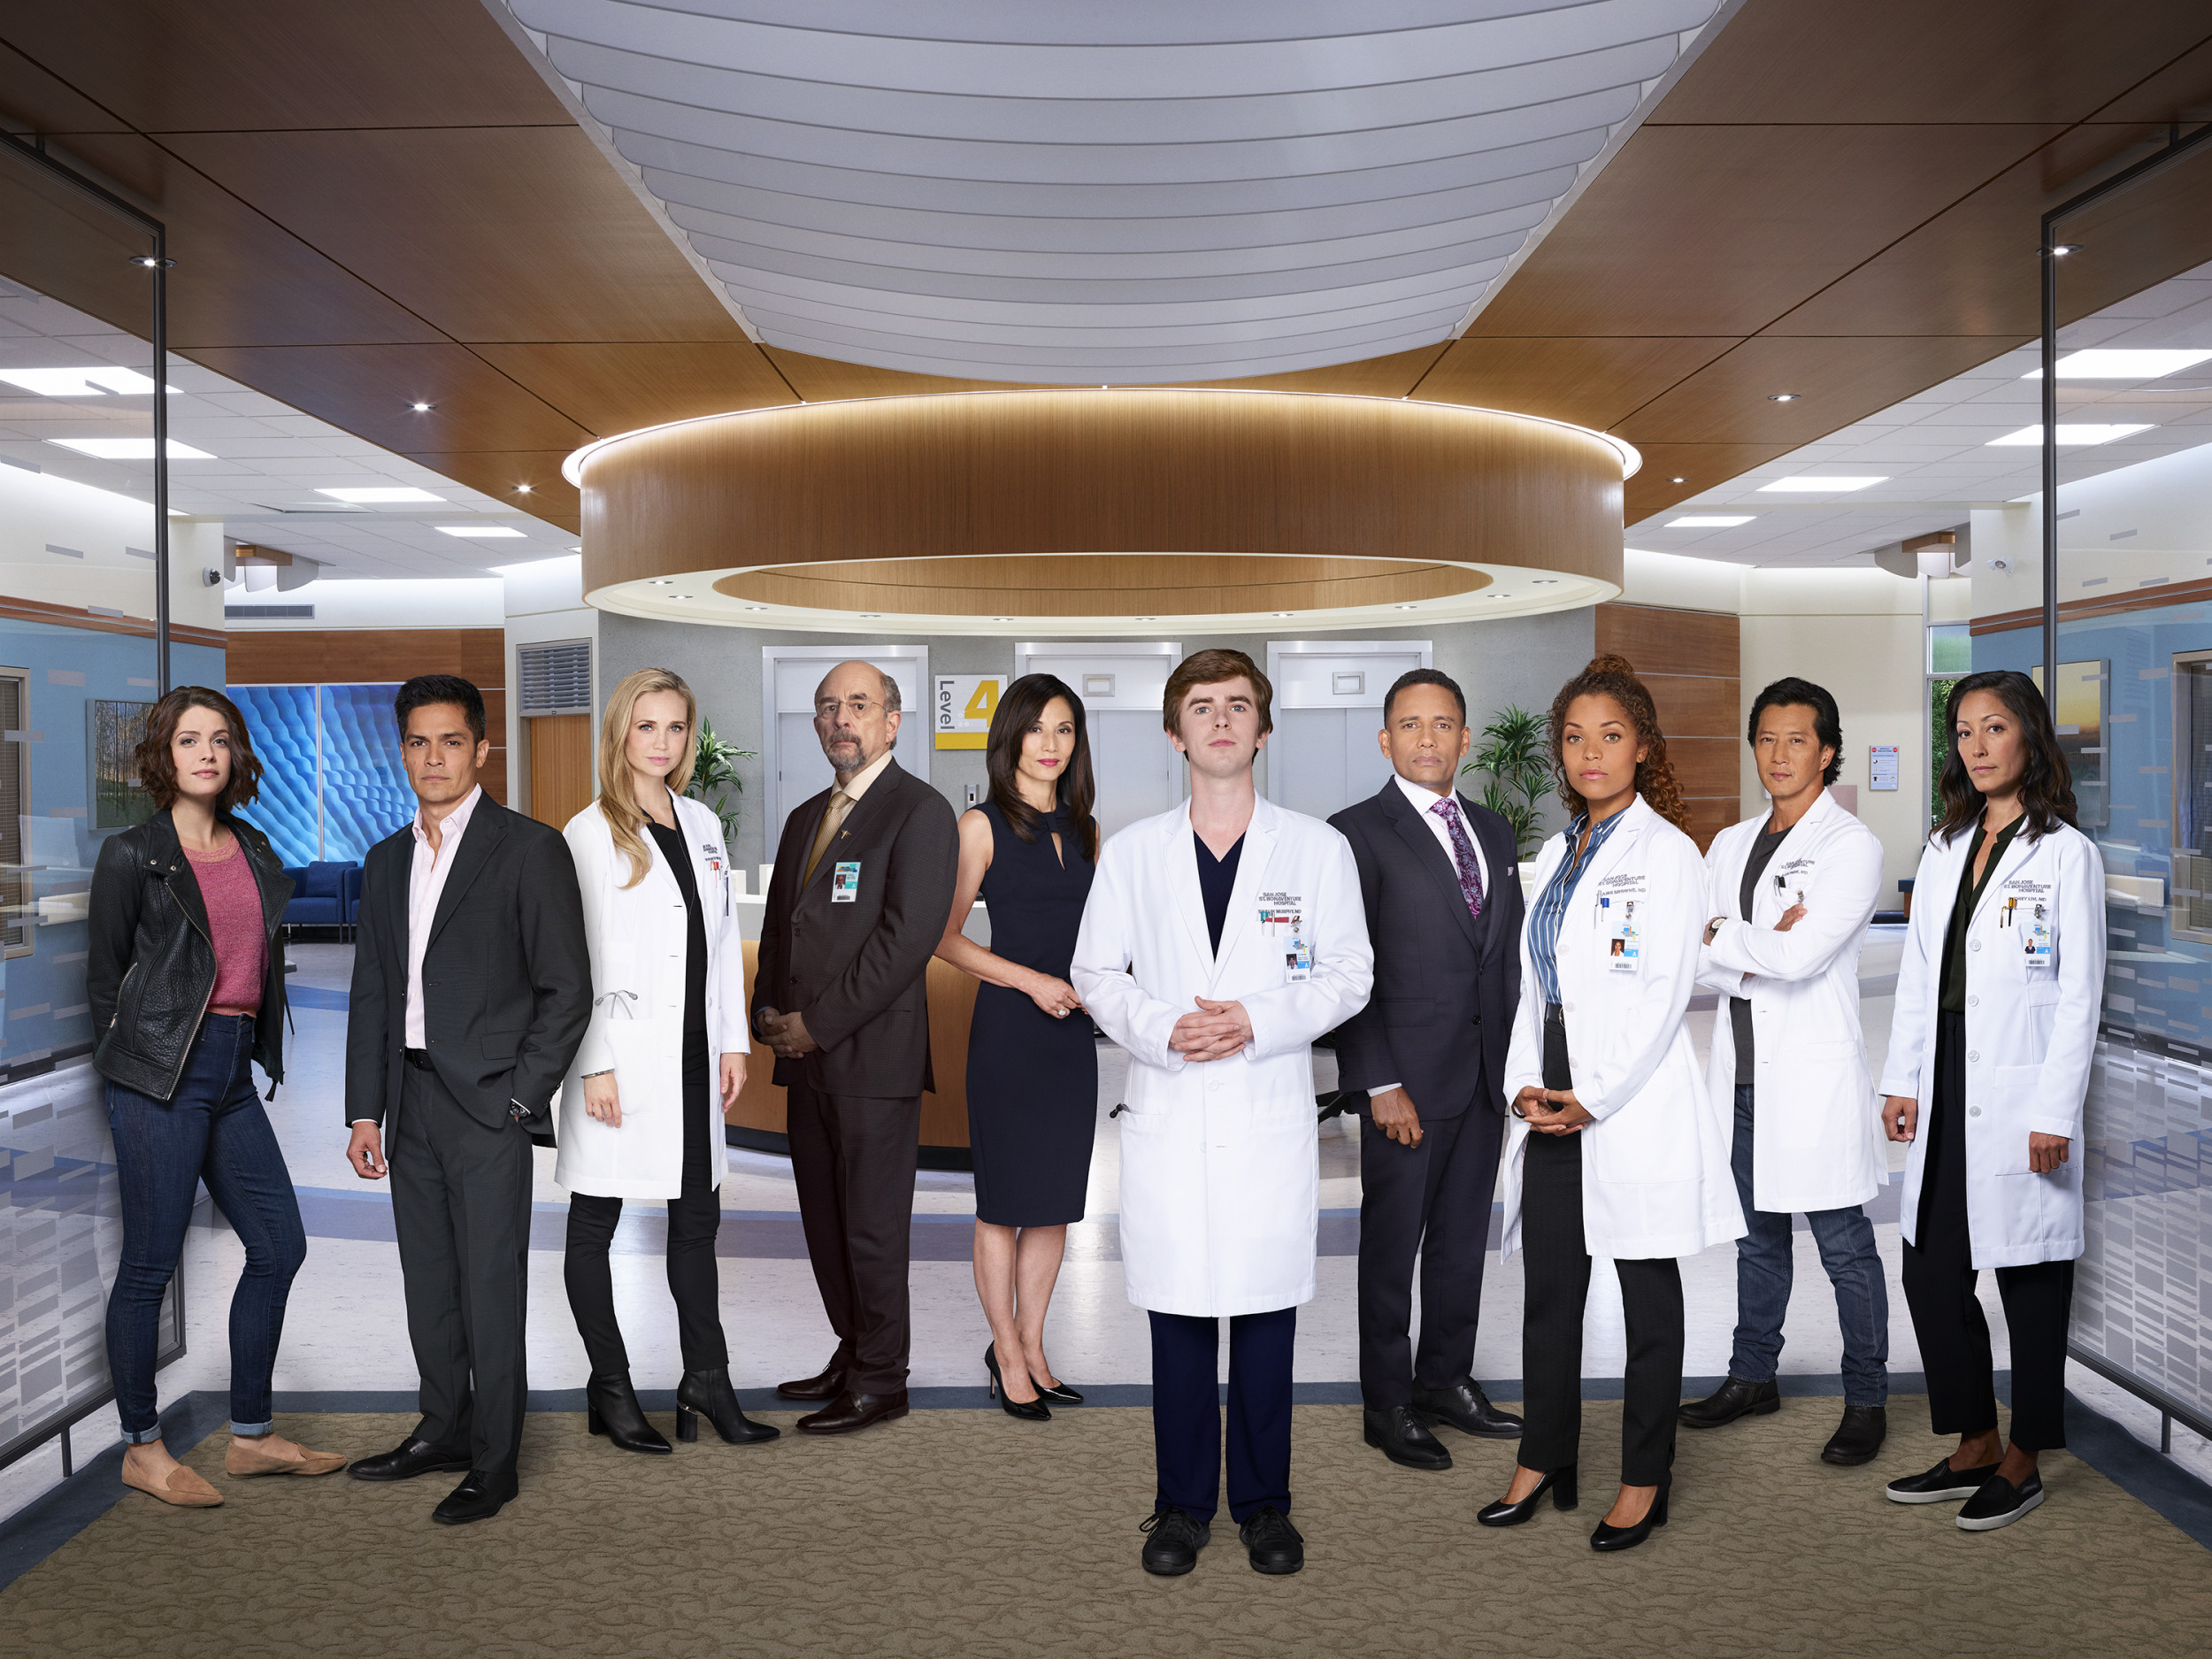 'The Good Doctor' Season 3 Release Date, Cast, Trailer